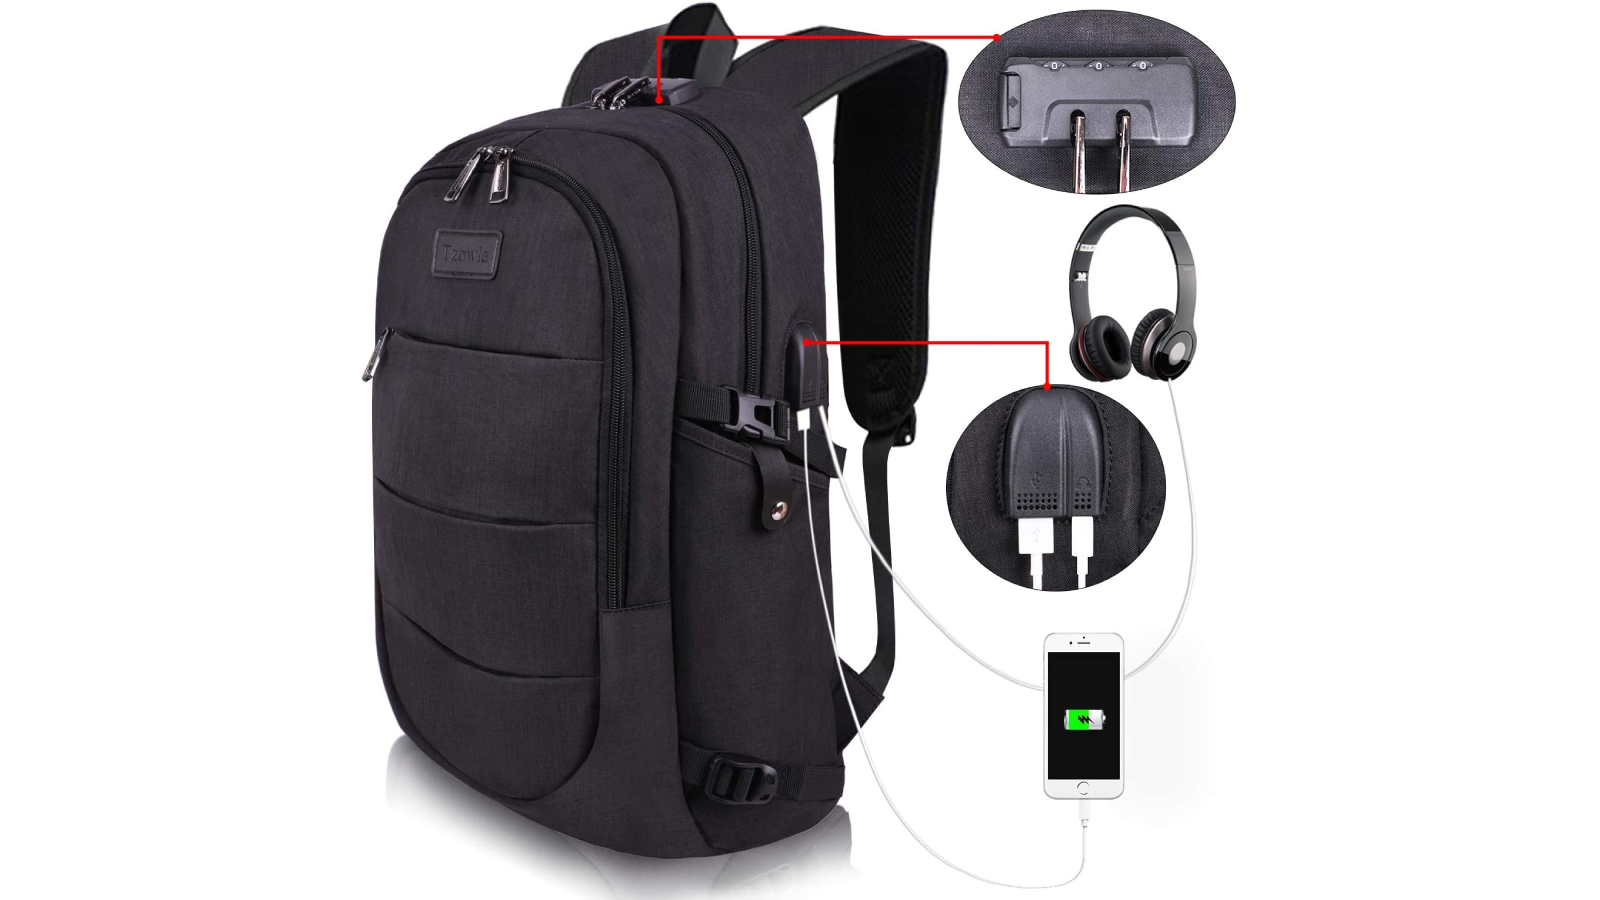 Gray backpack at an angle, small photos of headphones, iPhone, etc